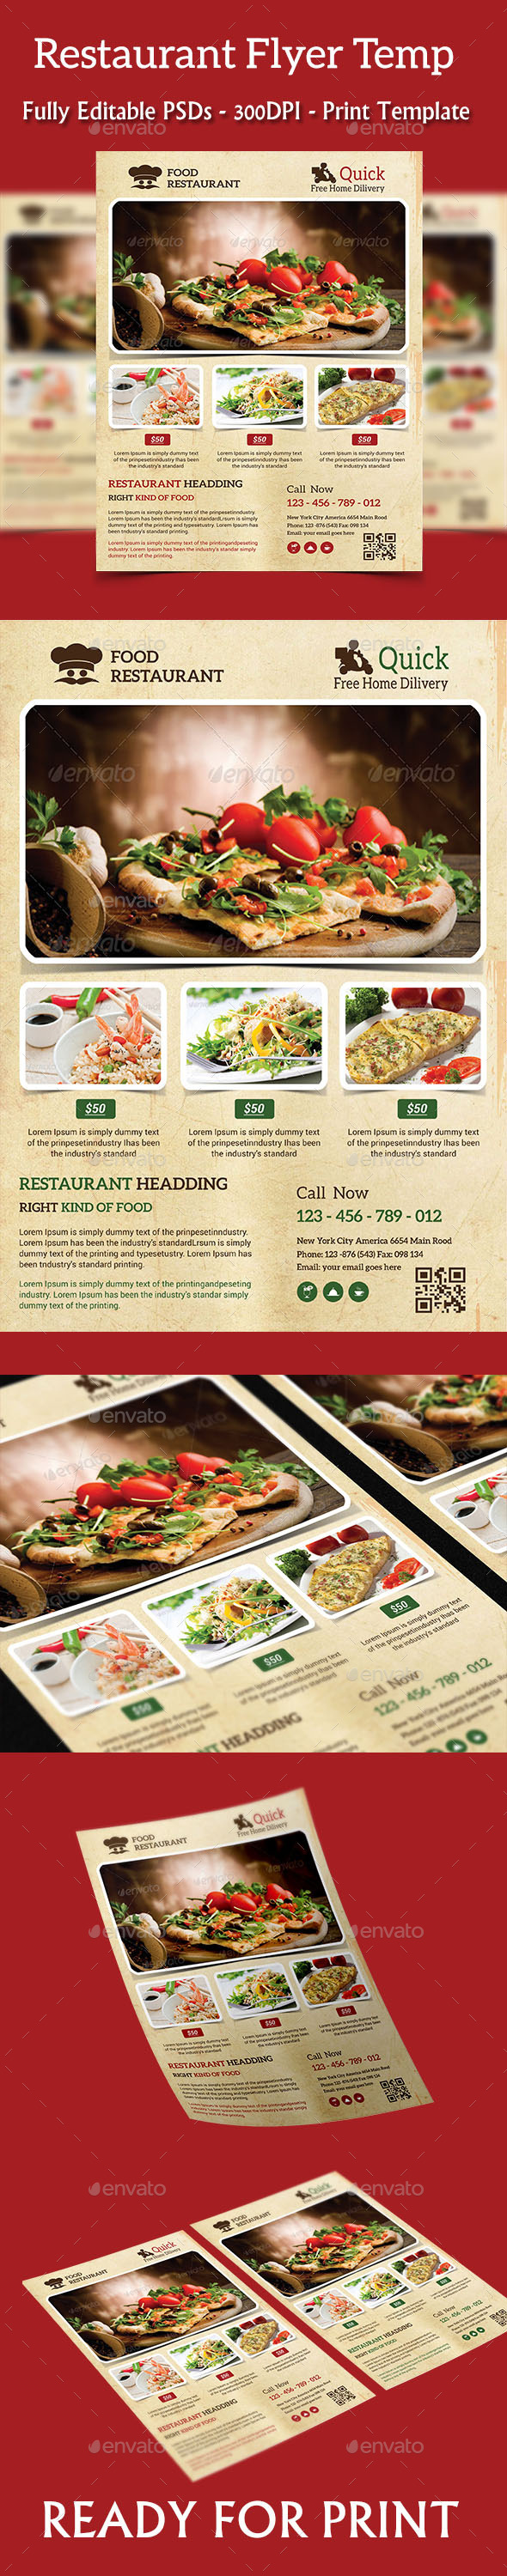 Restaurant Flyer - Events Flyers